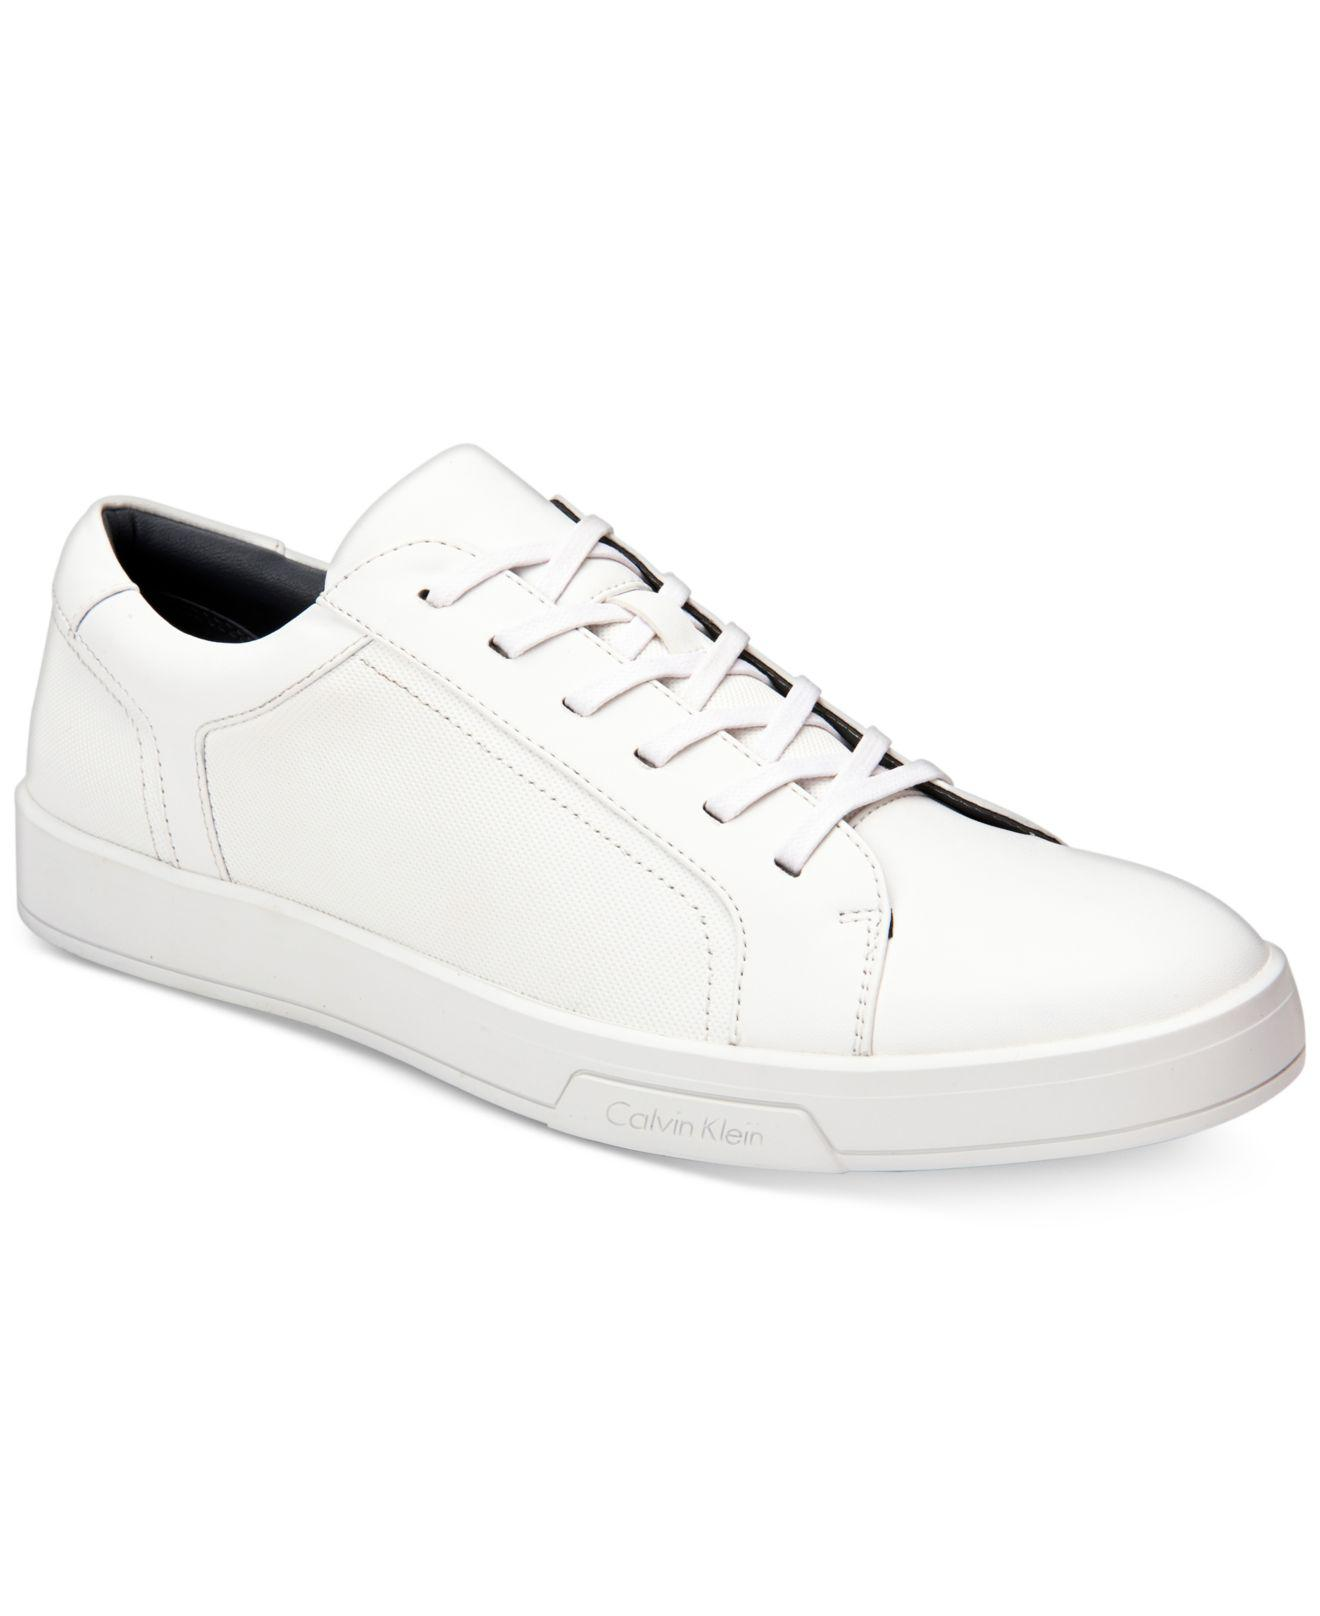 Bowyer Diamond Sneakers Calvin Klein Trainers White Shoes